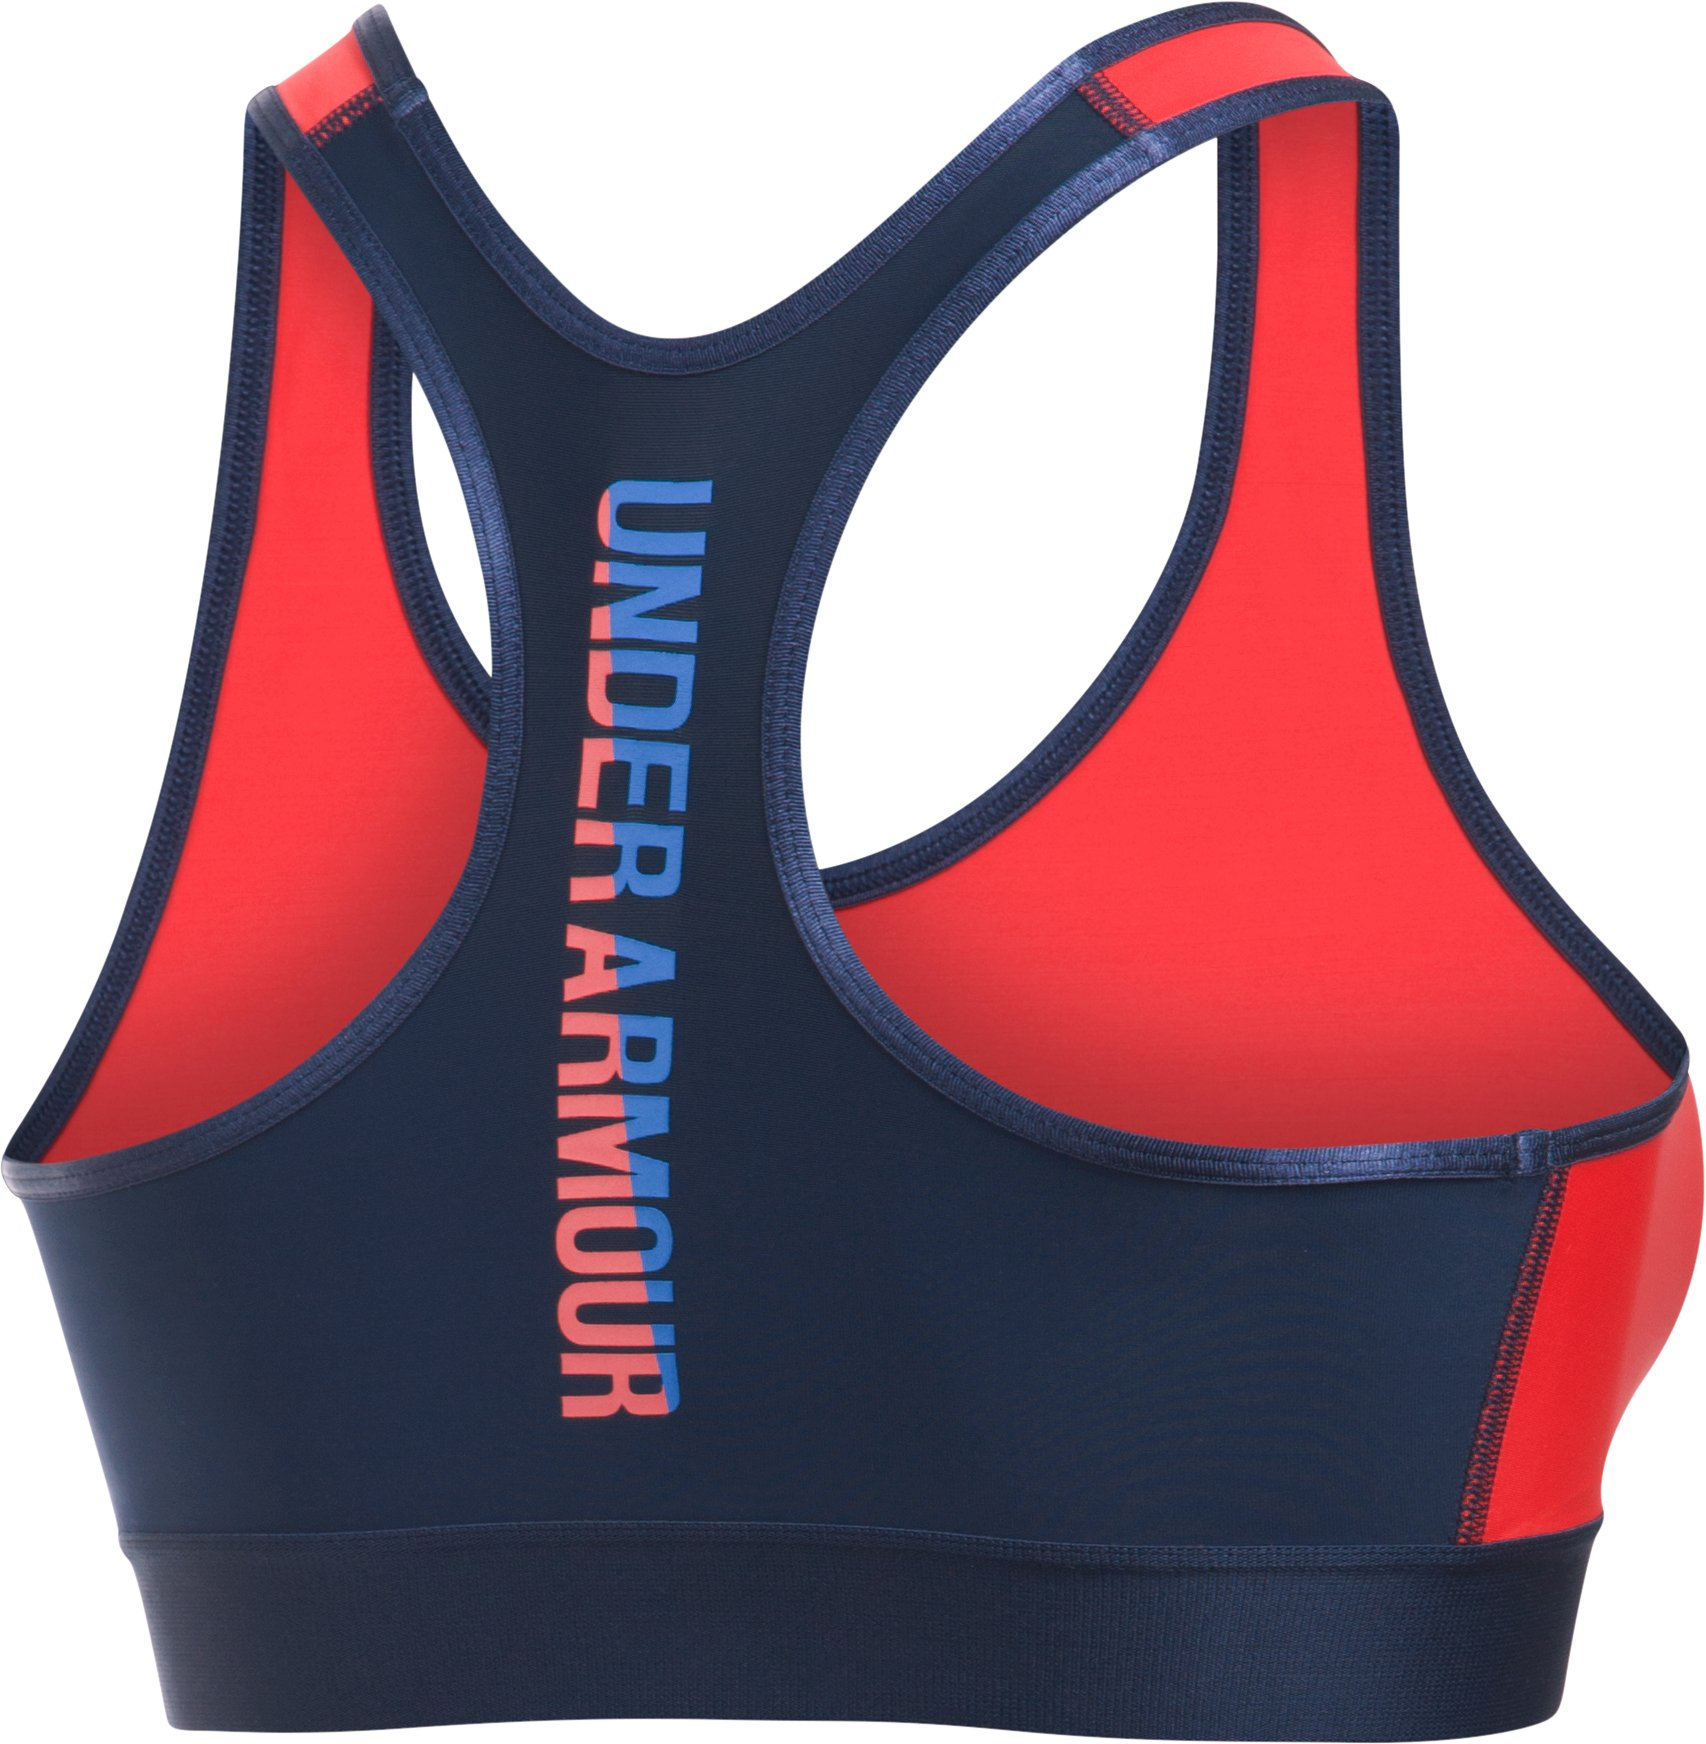 Women's Armour® Mid UA Graphic Sports Bra, Pomegranate,